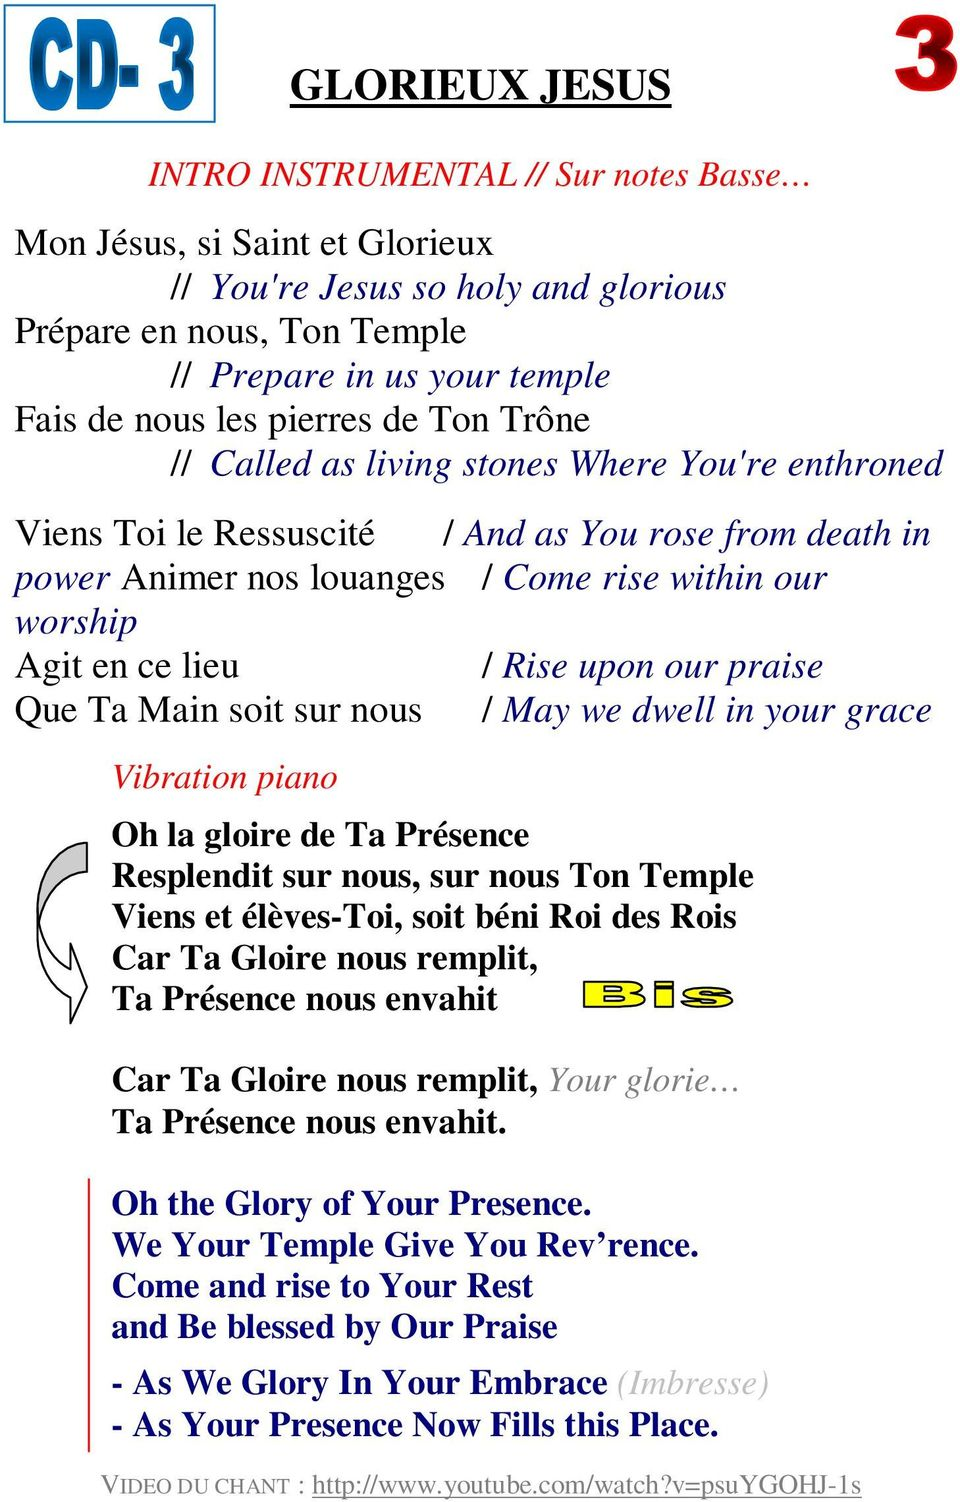 / Rise upon our praise Que Ta Main soit sur nous / May we dwell in your grace Vibration piano Oh la gloire de Ta Présence Resplendit sur nous, sur nous Ton Temple Viens et élèves-toi, soit béni Roi